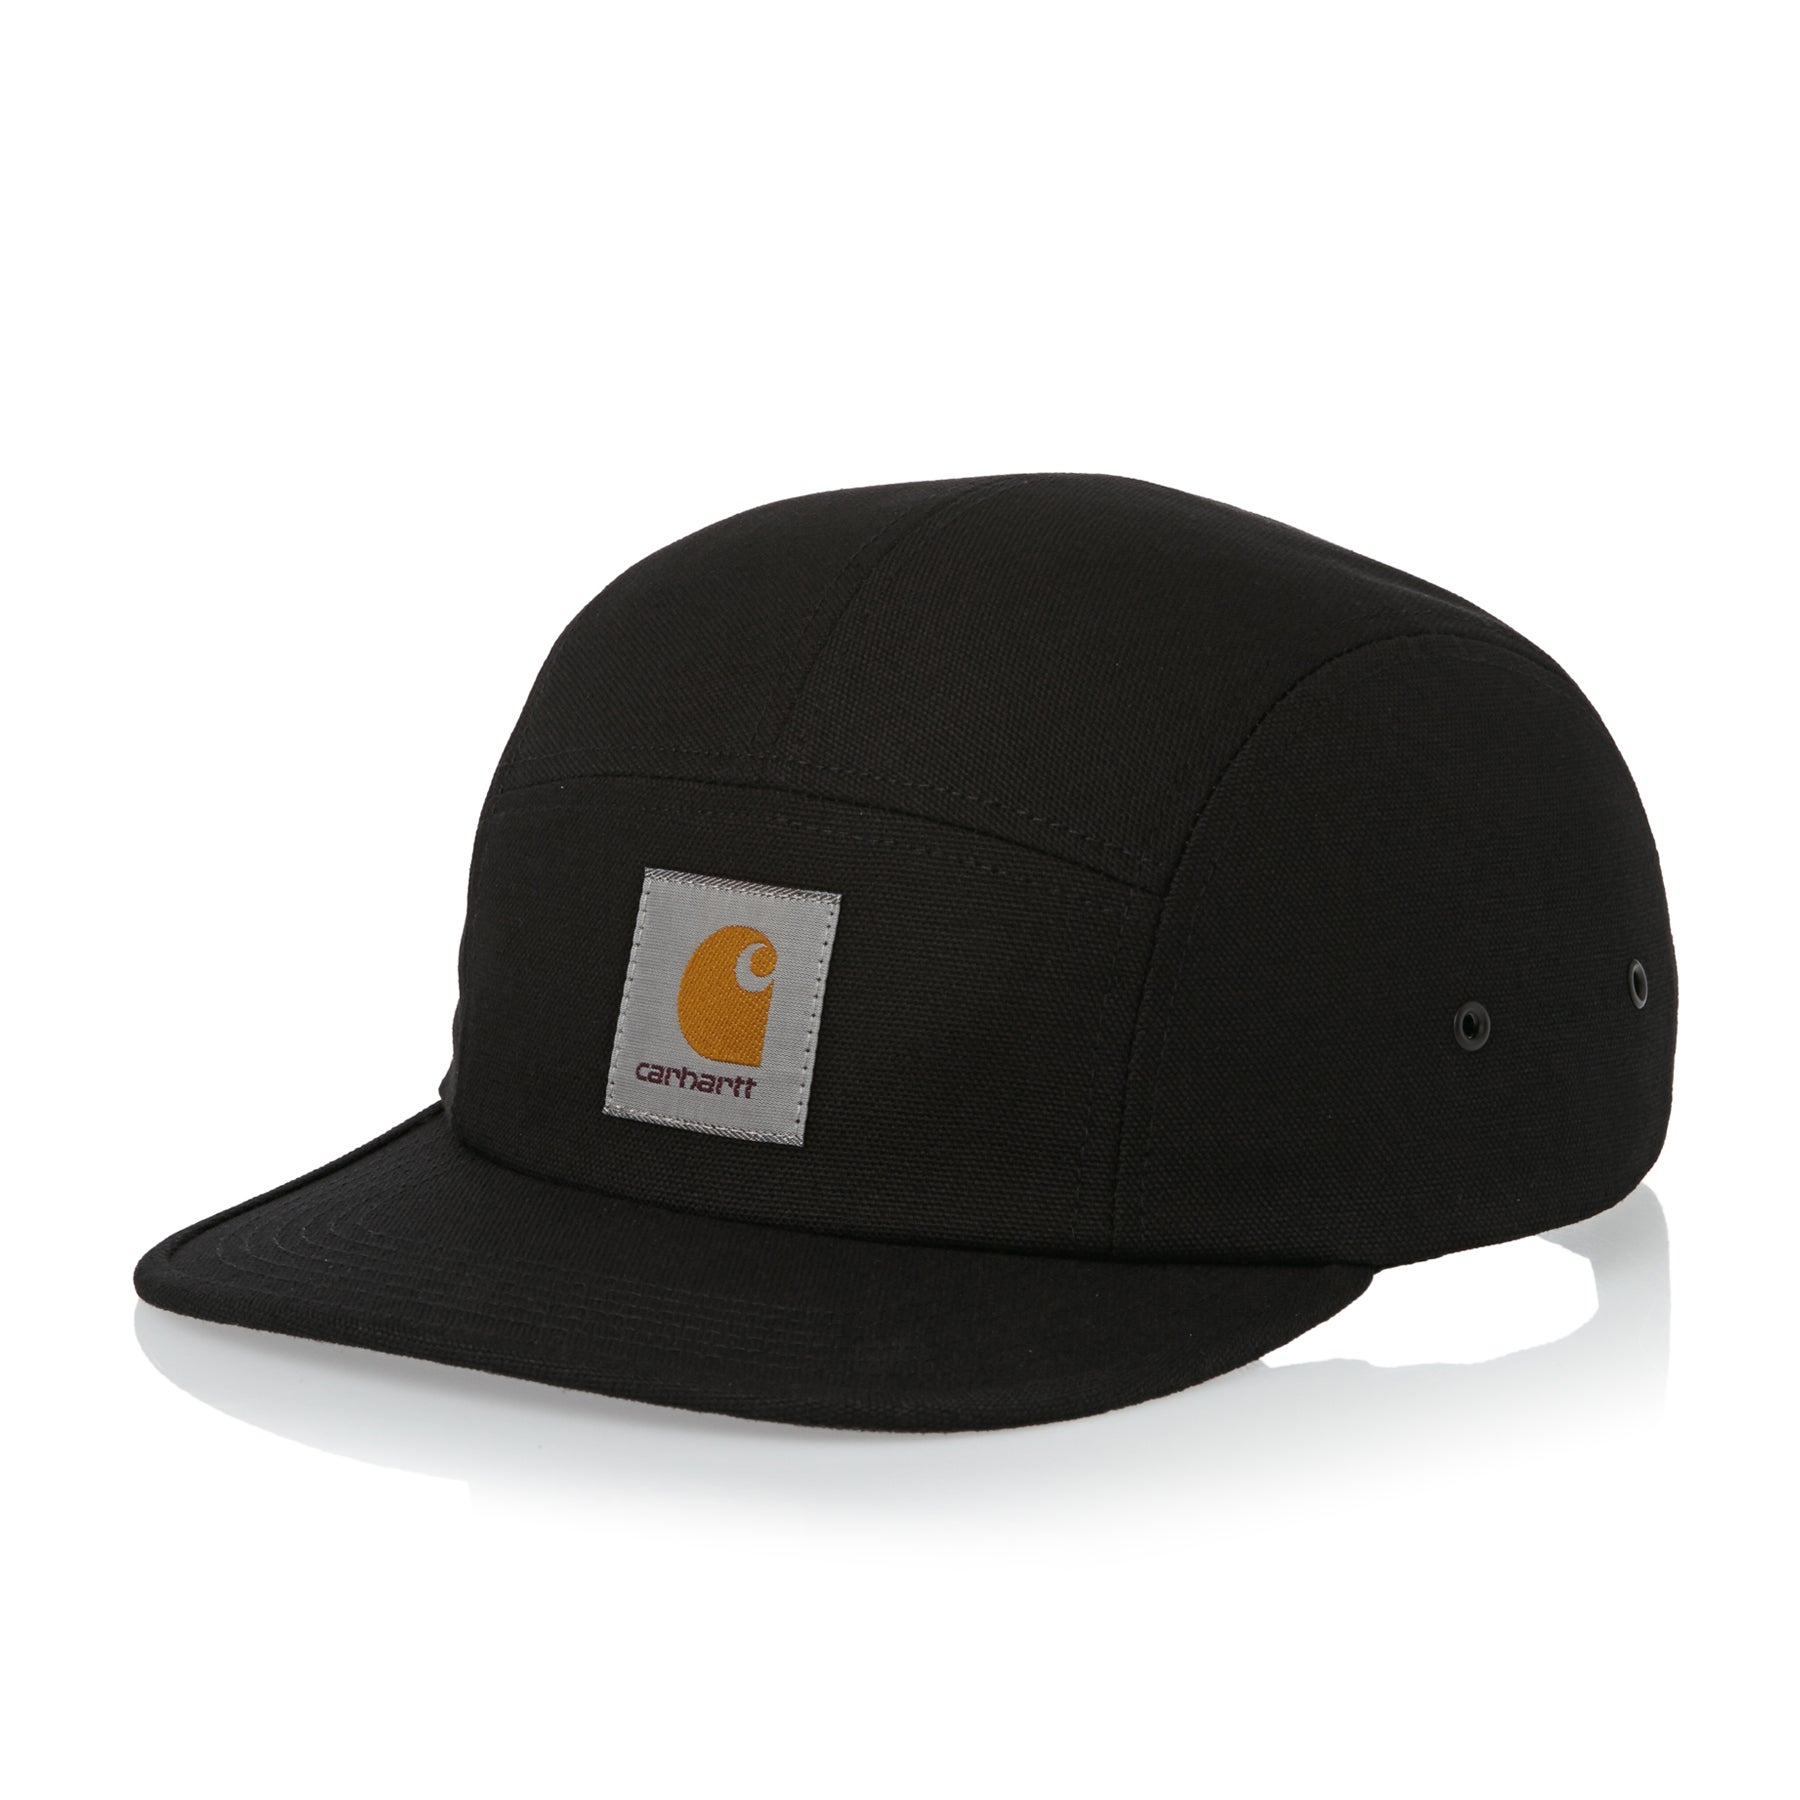 Carhartt Backley Mens Cap